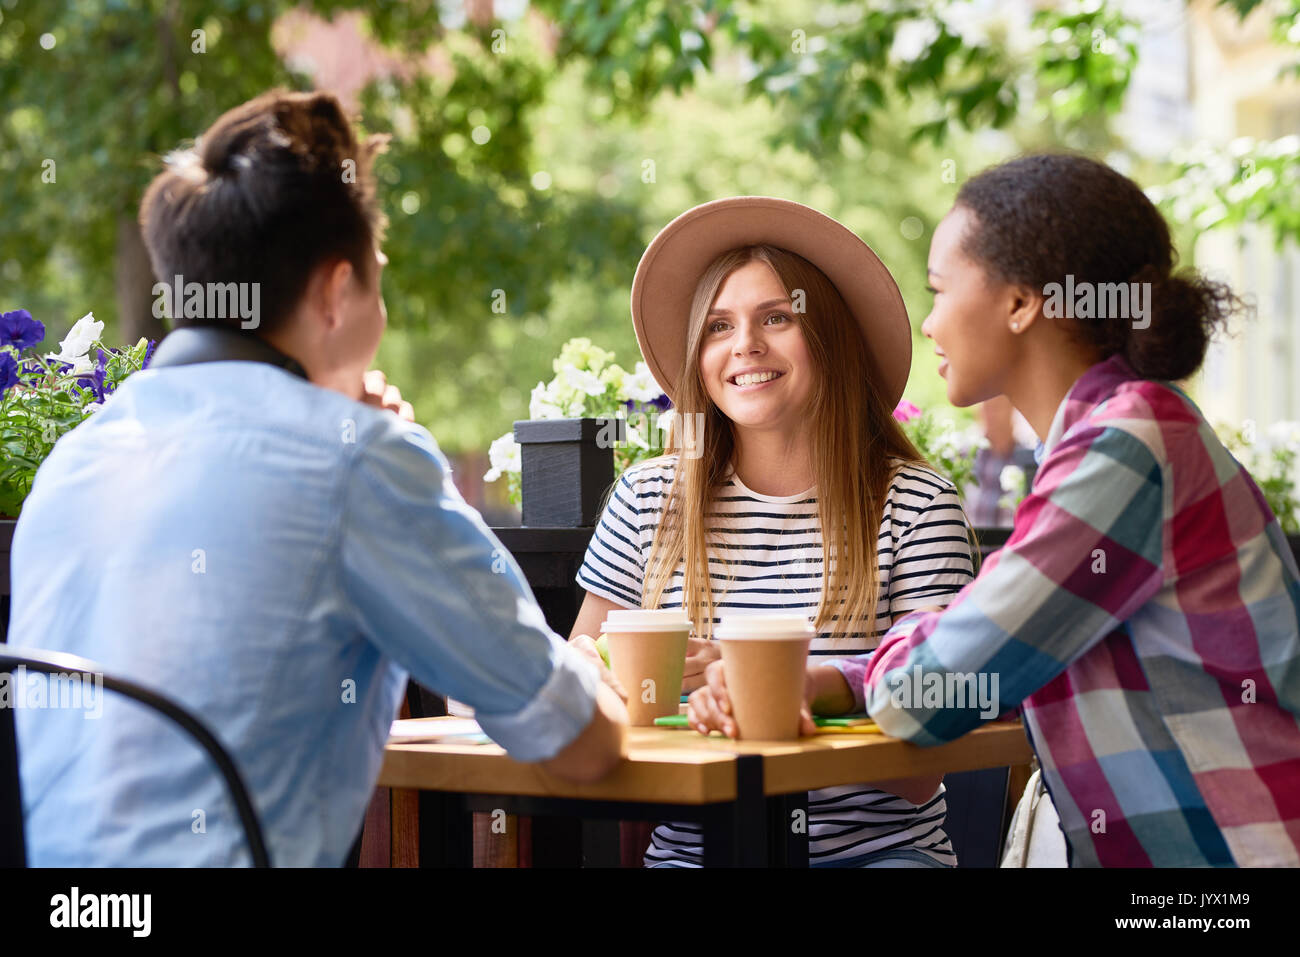 Students Chatting at Lunch in Cafe Outdoors - Stock Image